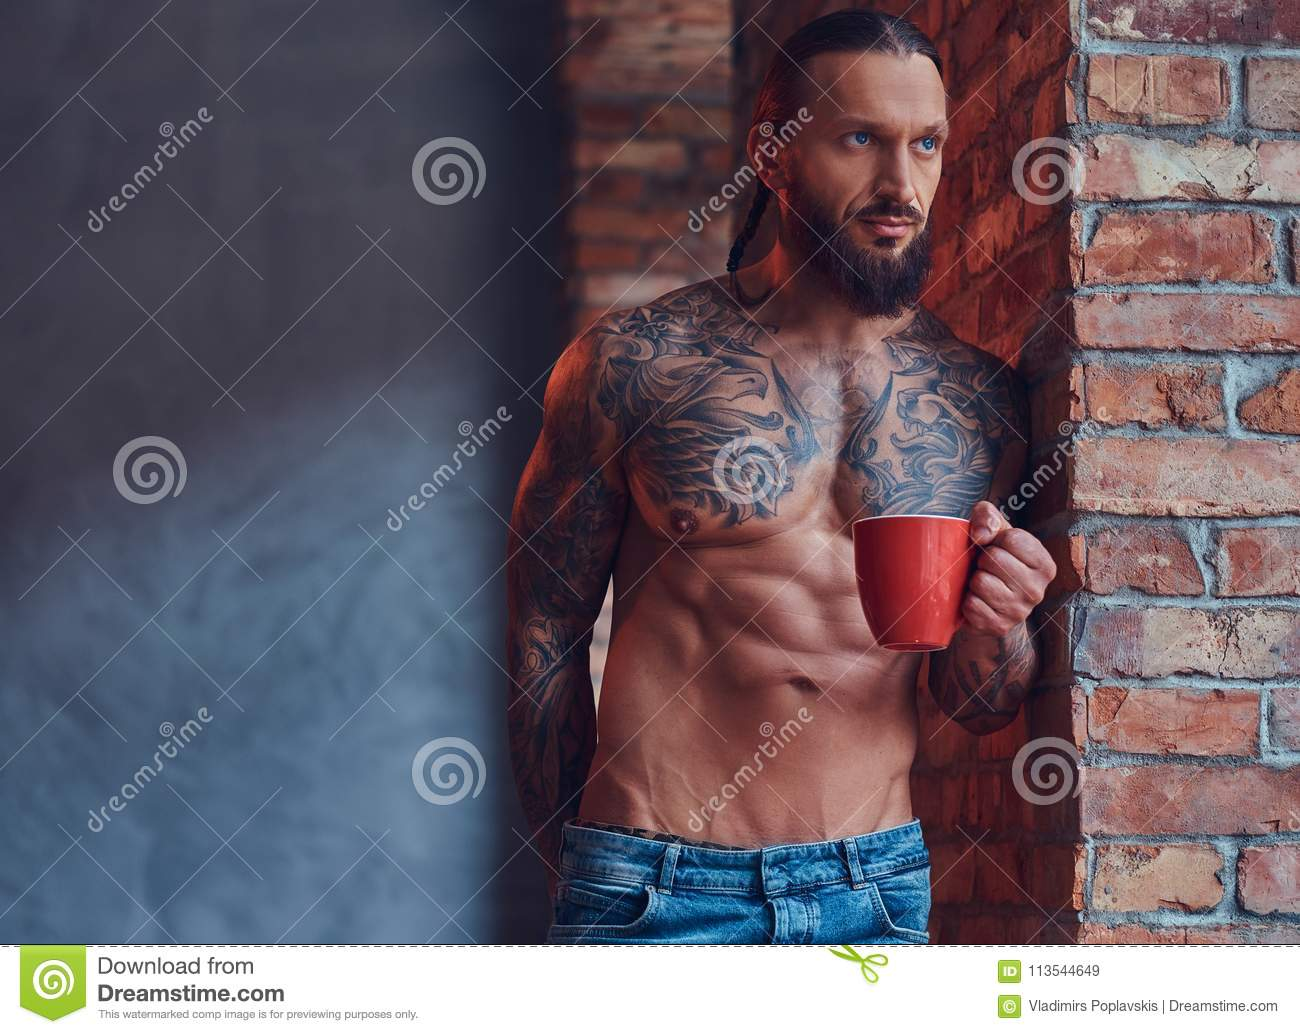 Portrait of a tattoed shirtless male with a stylish haircut and beard, drinks morning coffee, leaning against a brick